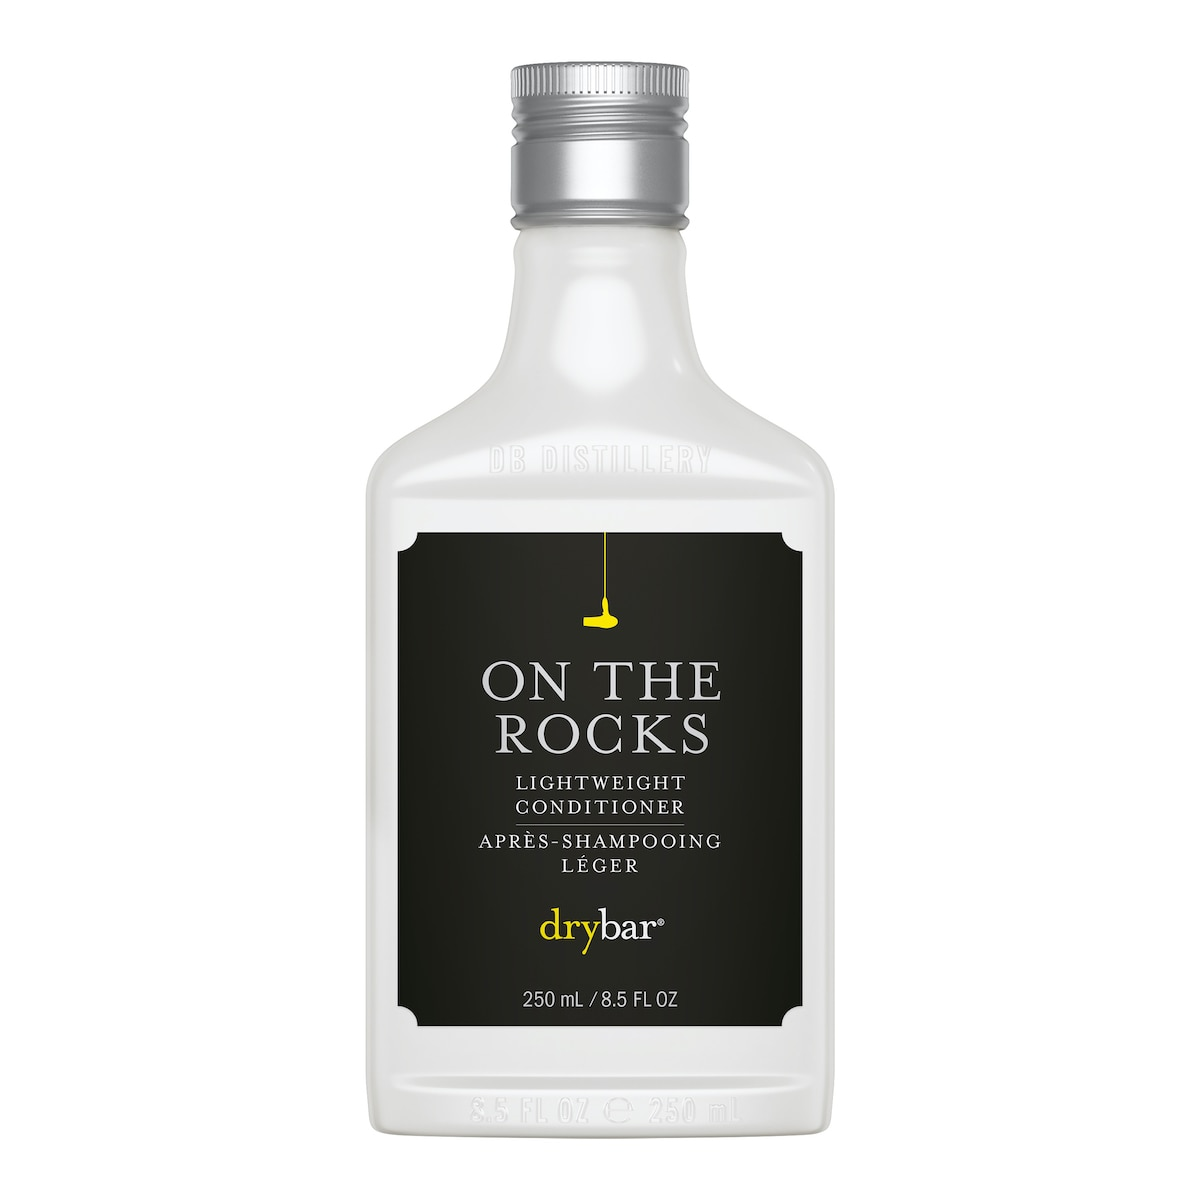 ON THE ROCKS LIGHTWEIGHT CONDITIONER